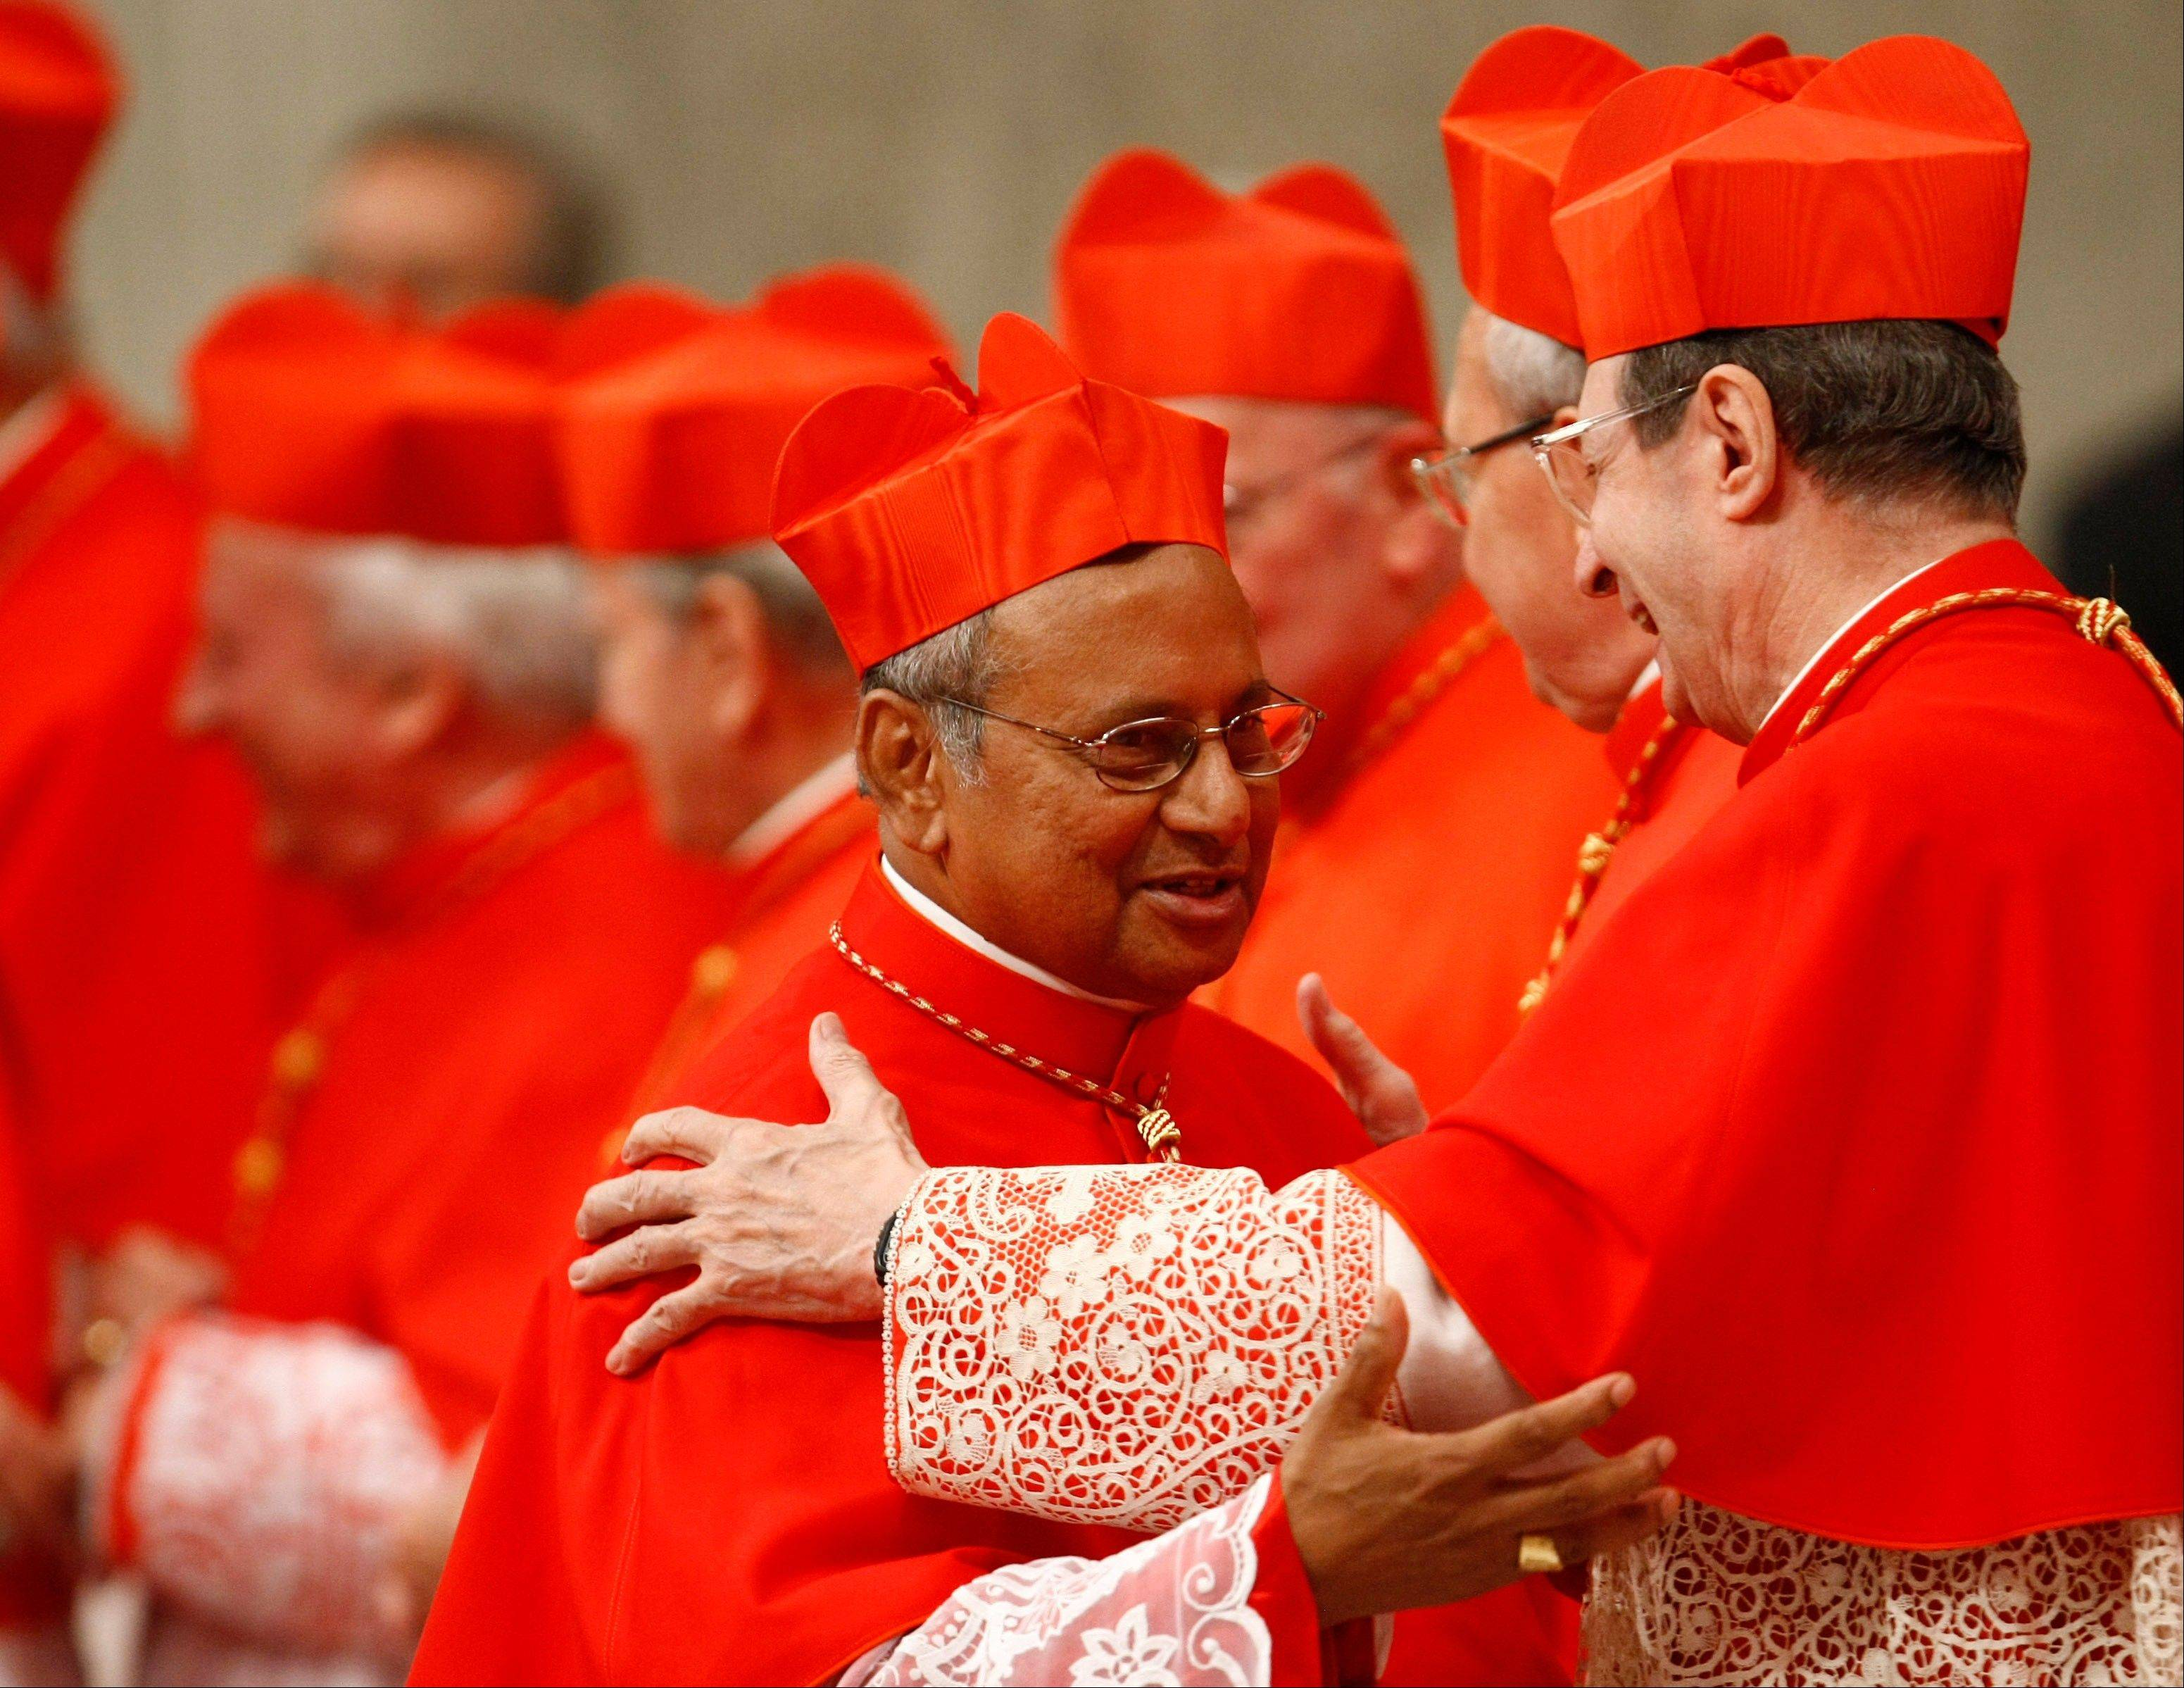 Sri Lanka cardinal hews to tradition in papal race